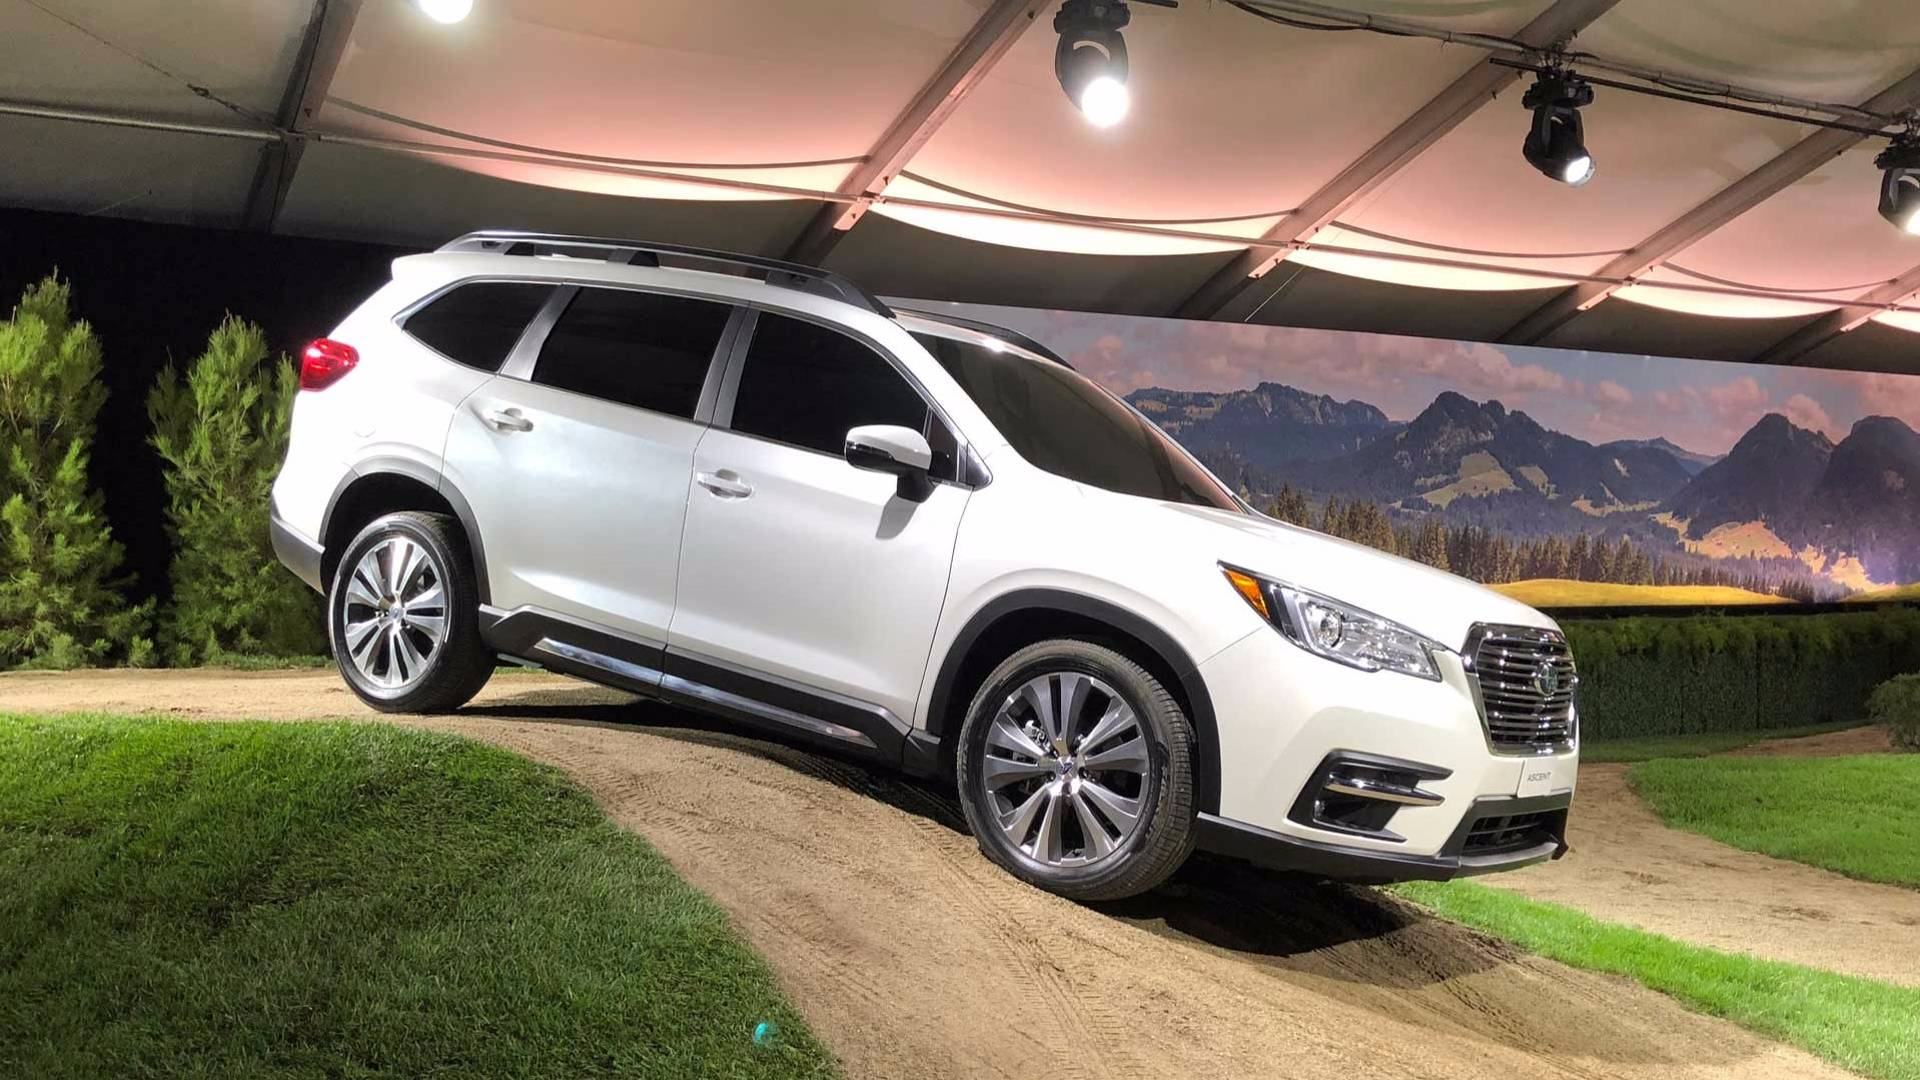 2019_Subaru_Ascent_02